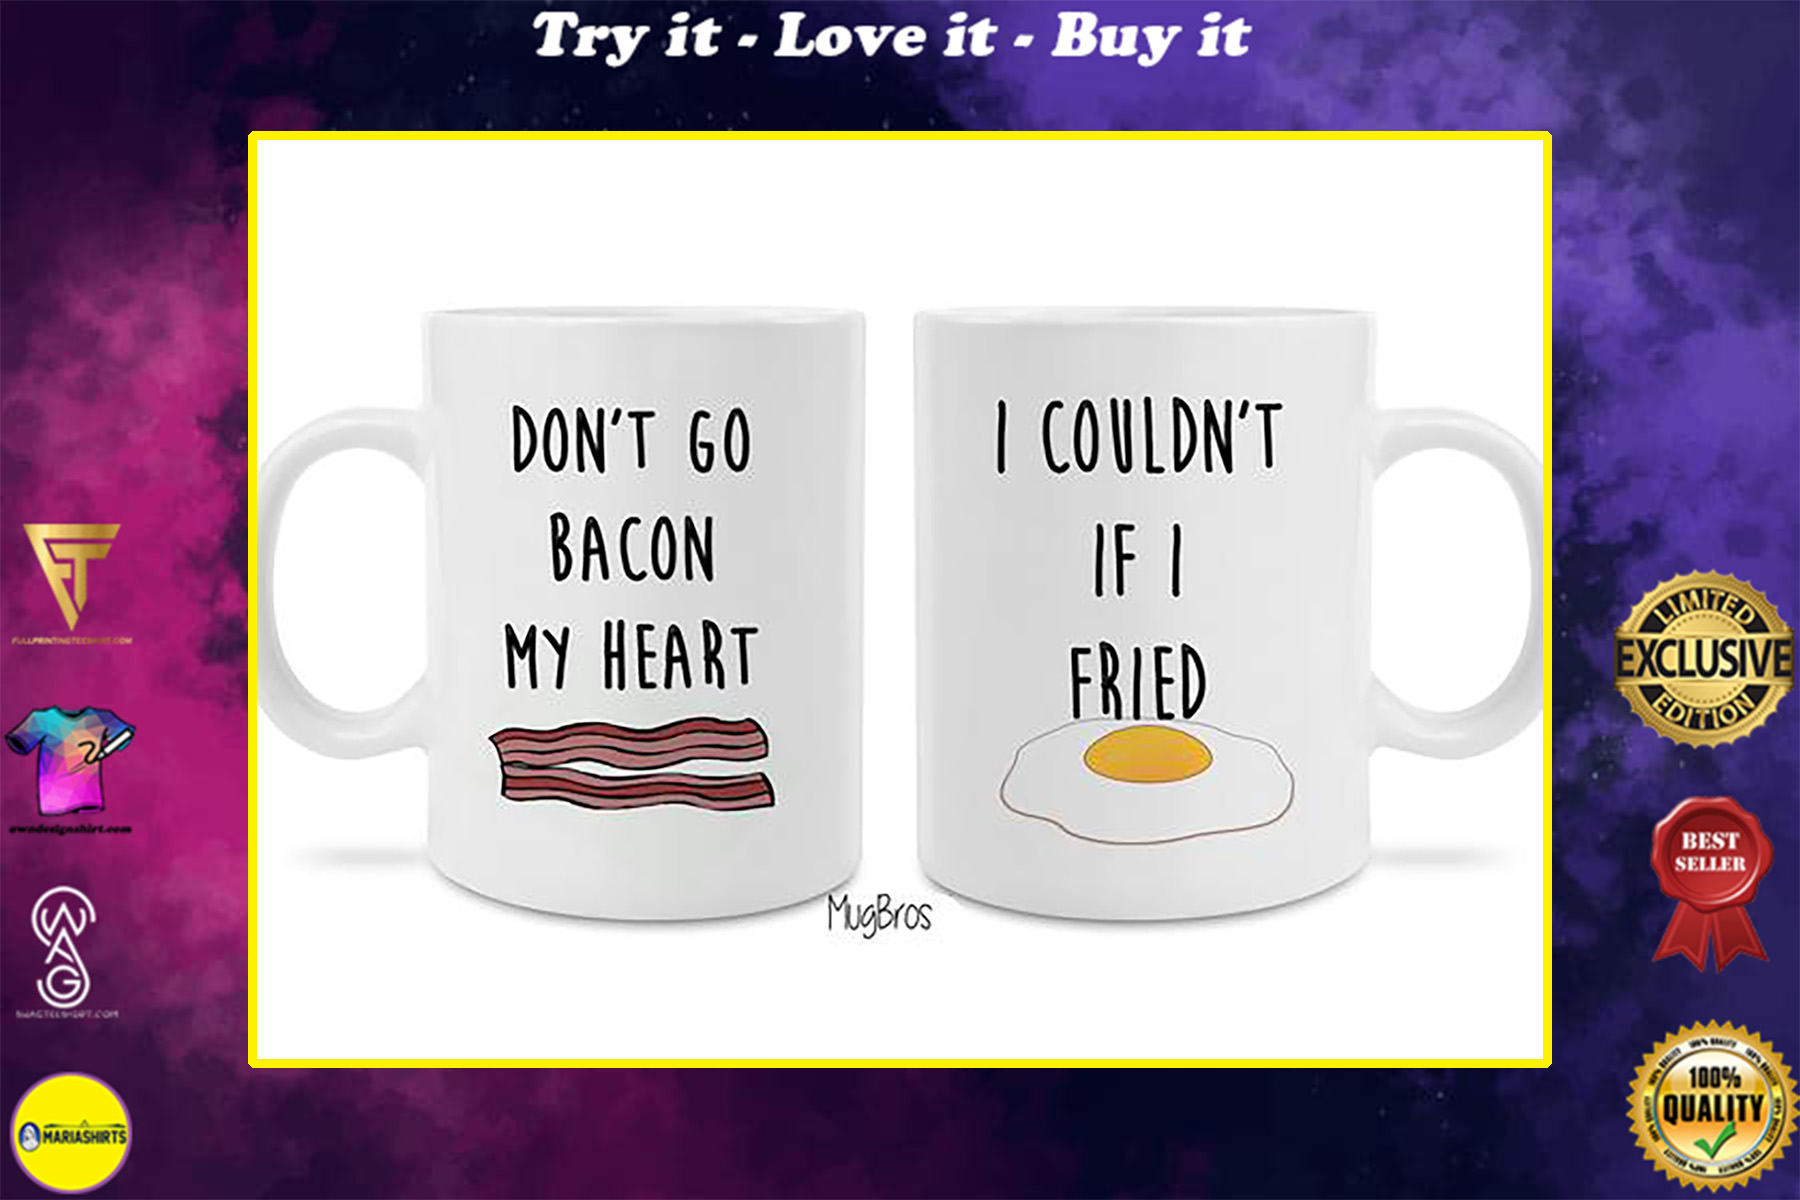 dont go bacon my heart i couldnt if i fried eggs and bacon coffee mug